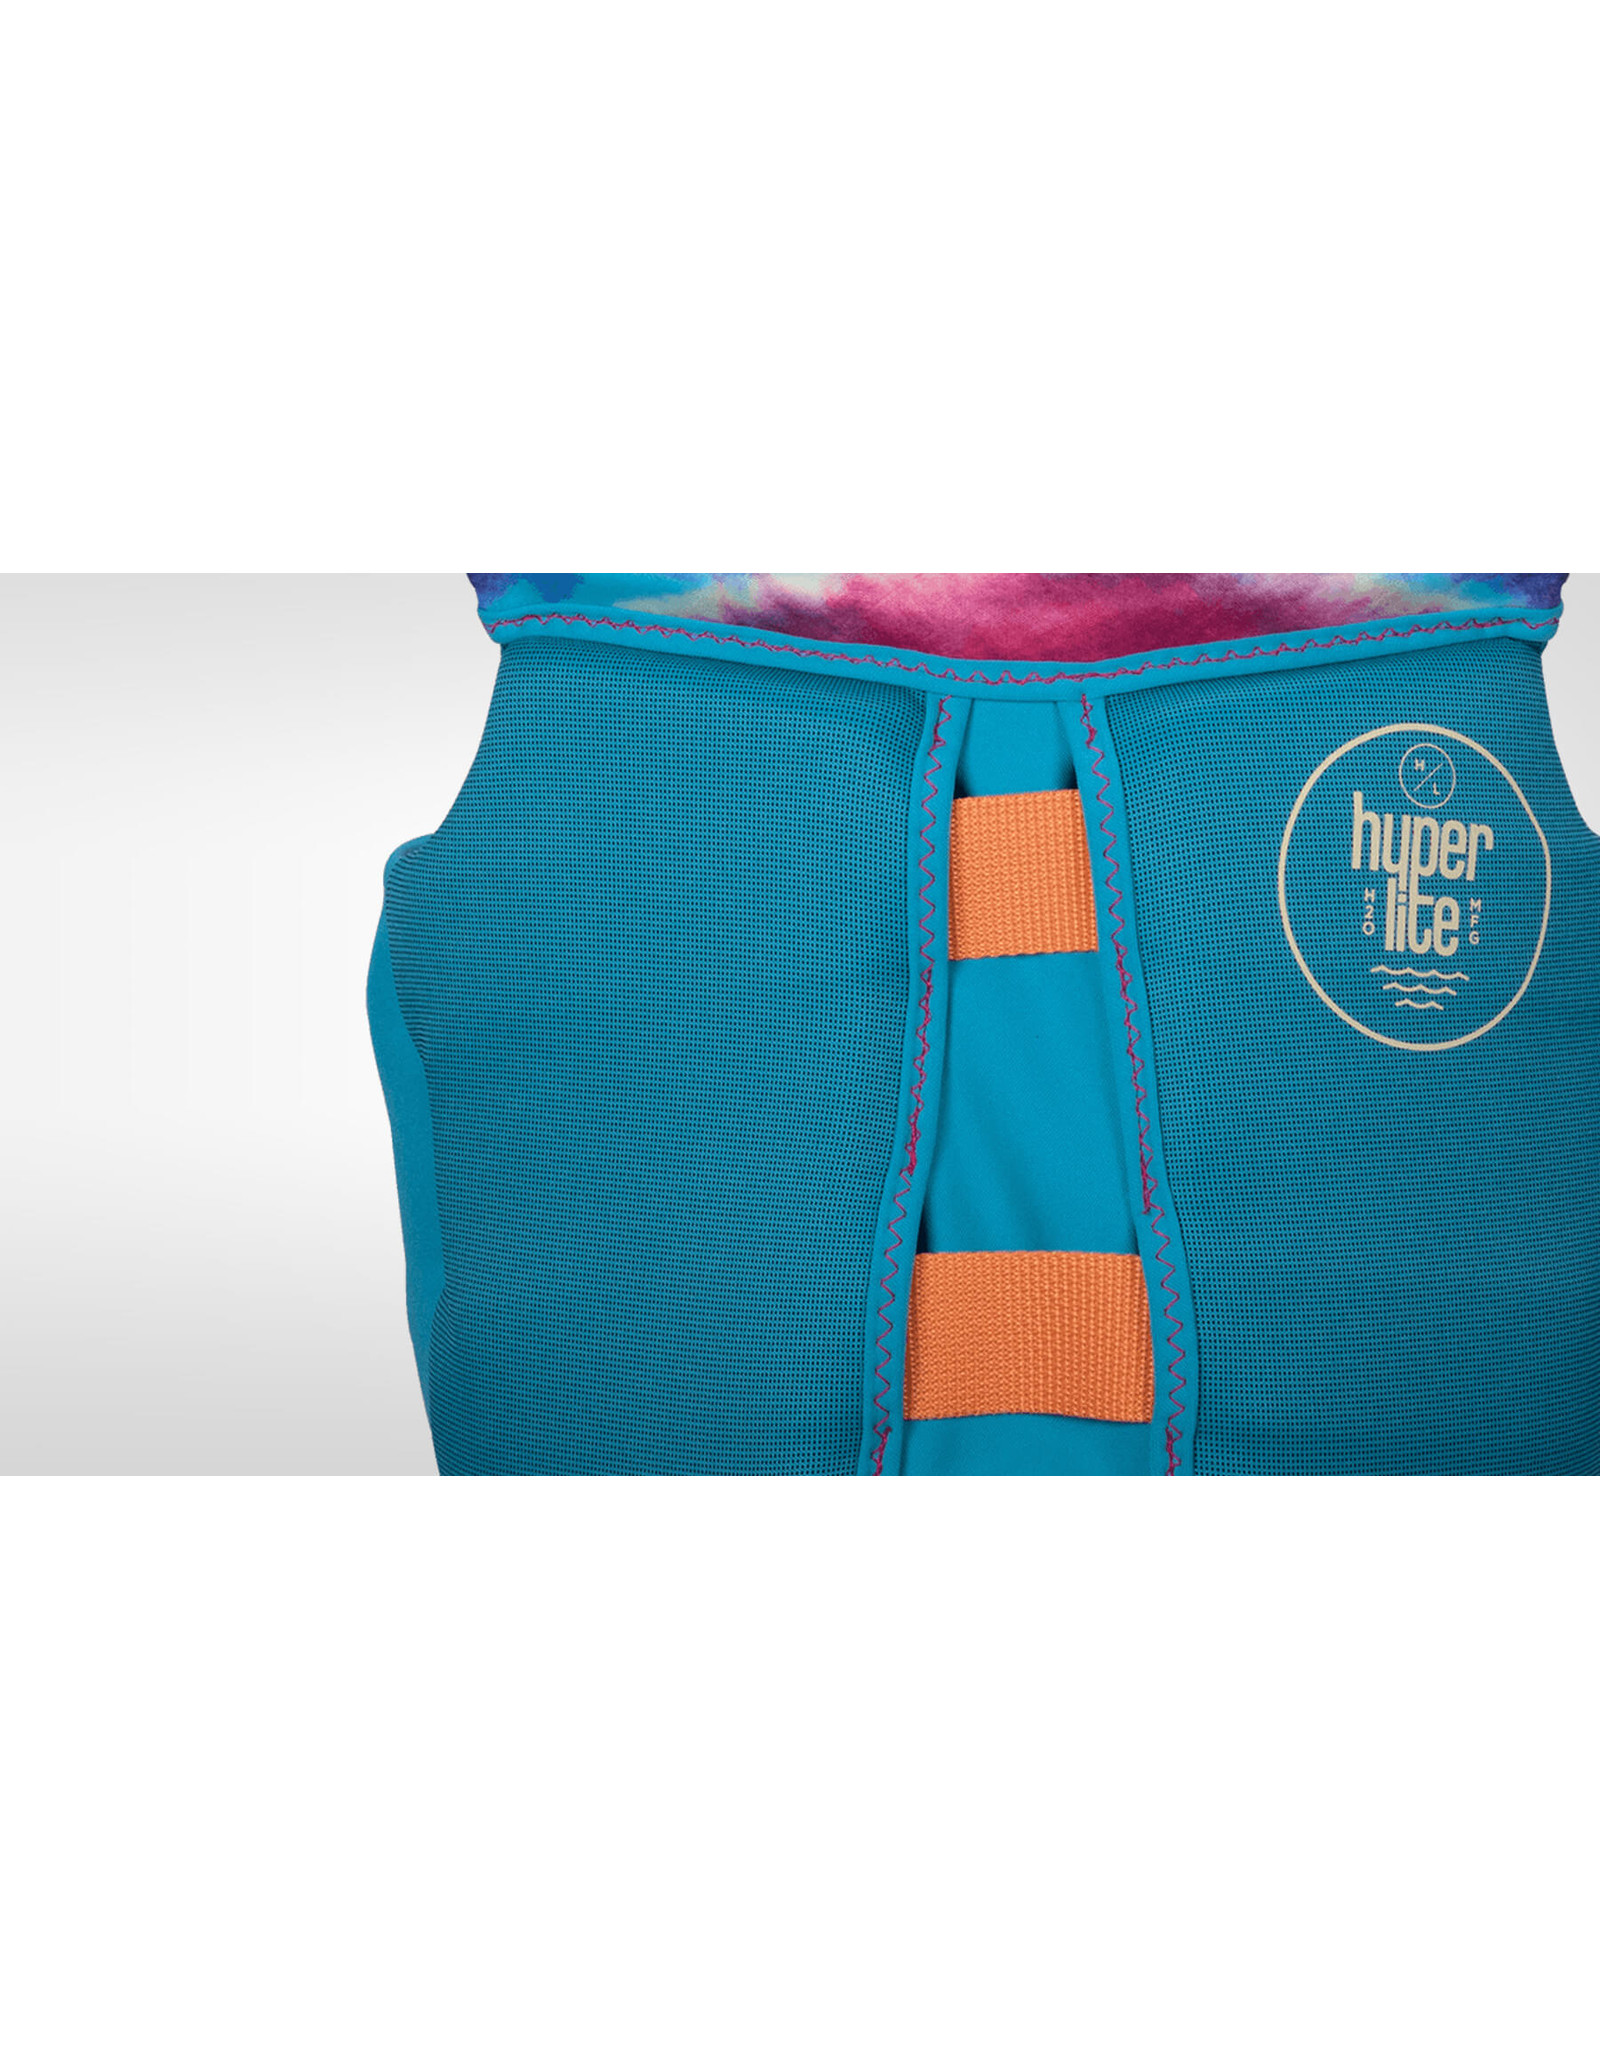 HO/Hyperlite Girlz Youth Indy HRM NEO Vest - Small (50 - 70 lbs)